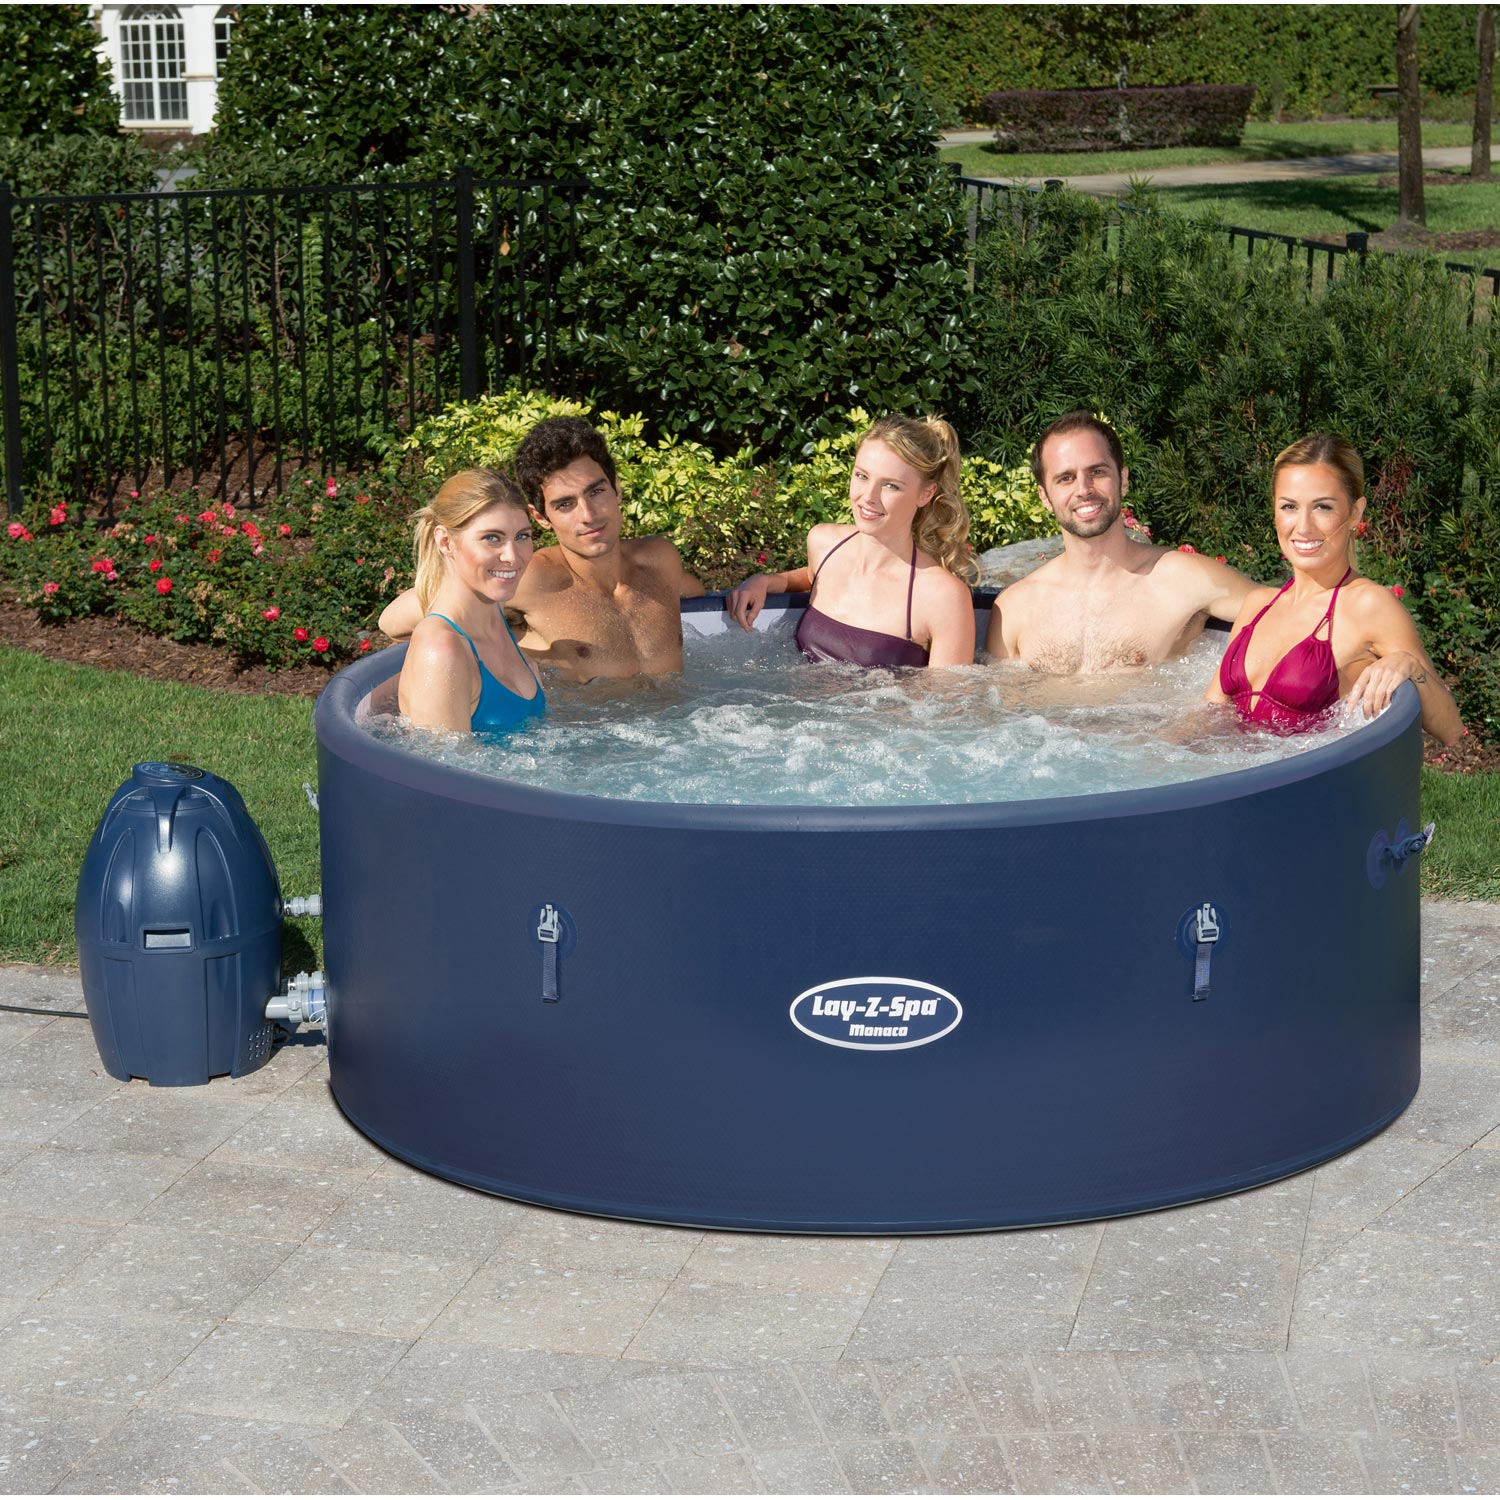 Spa Gonflable Bestway Monaco Rond Spa Gonflable Spa Et Gonflable